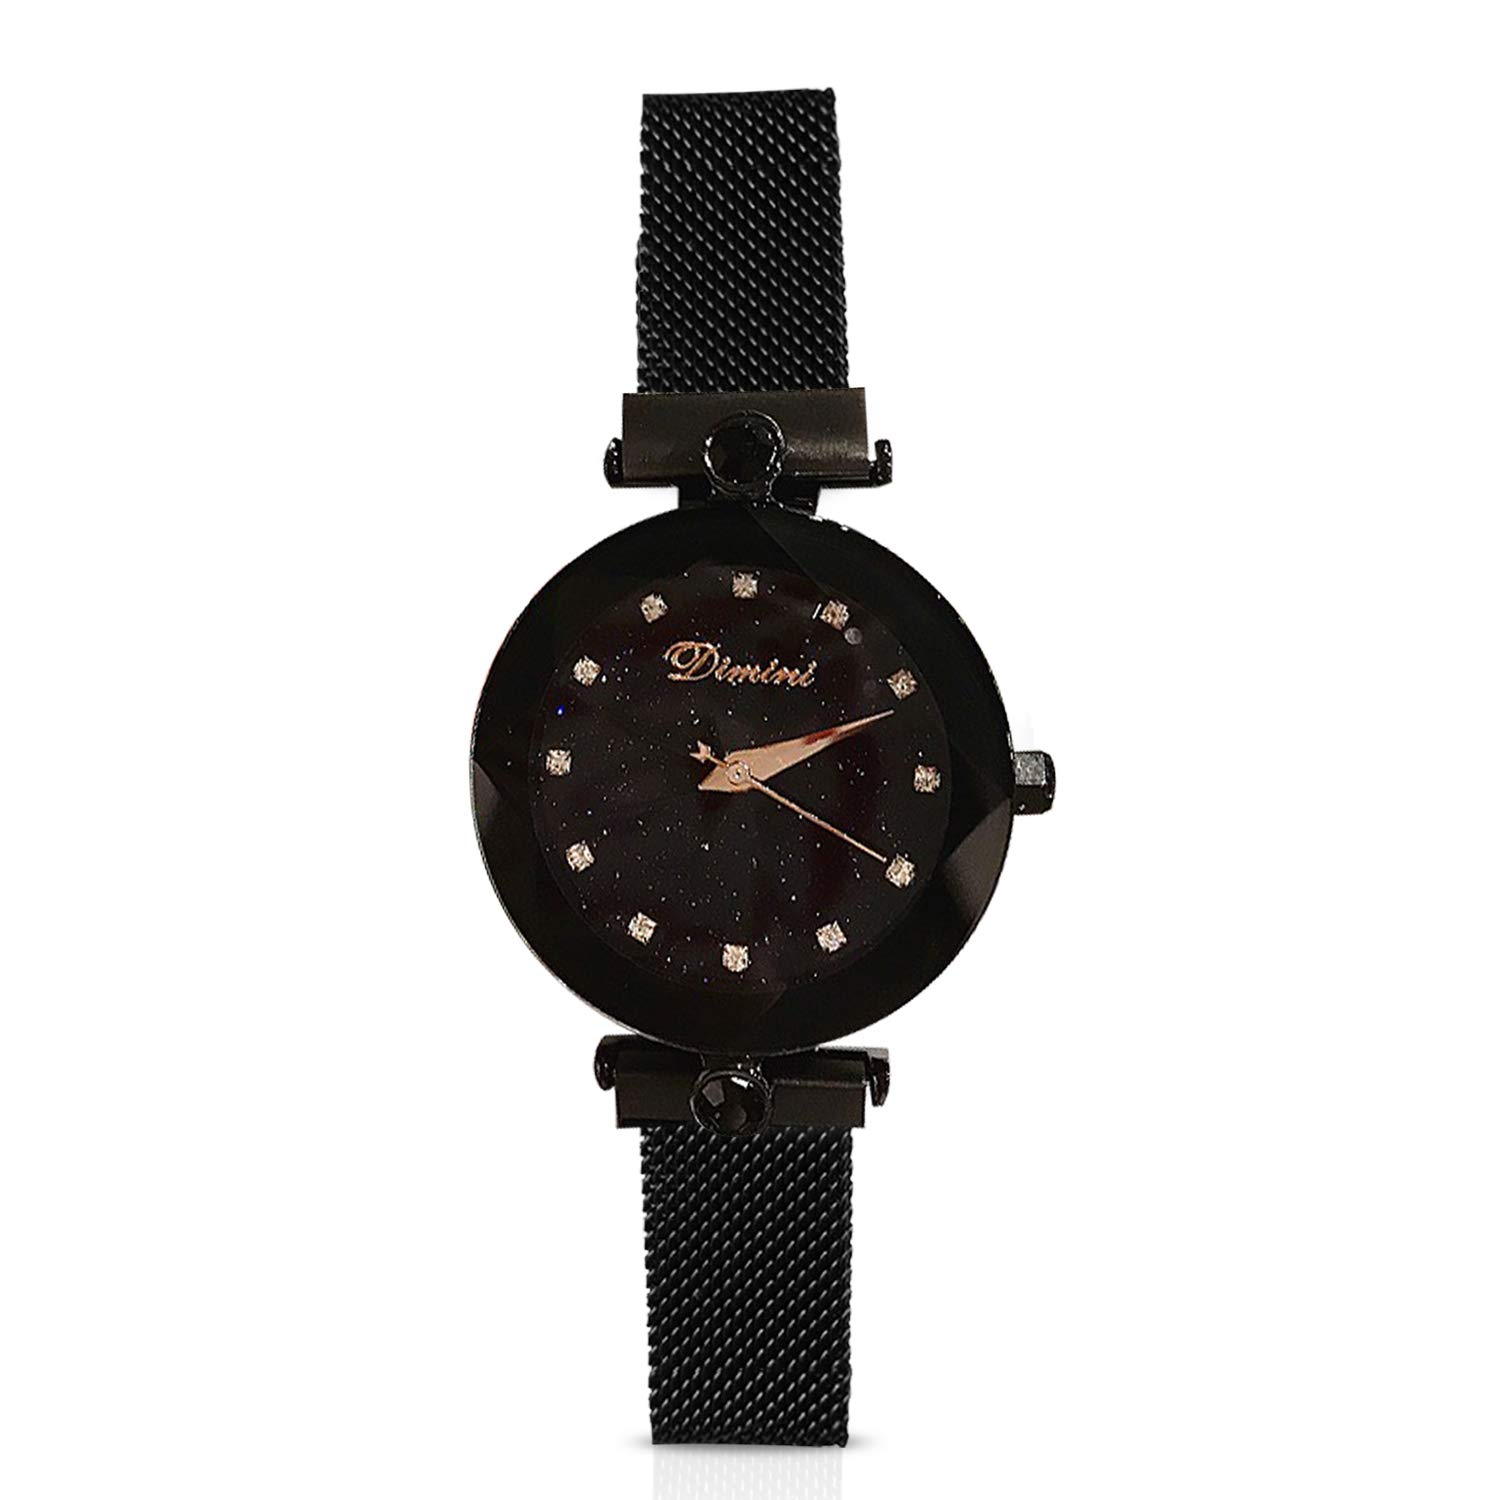 RORIOS Fashion Analogue Quartz Watches Magnetic Mesh Band Starry Sky Dial Simulated Diamond Wrist Watches for Girl/Women Waterproof